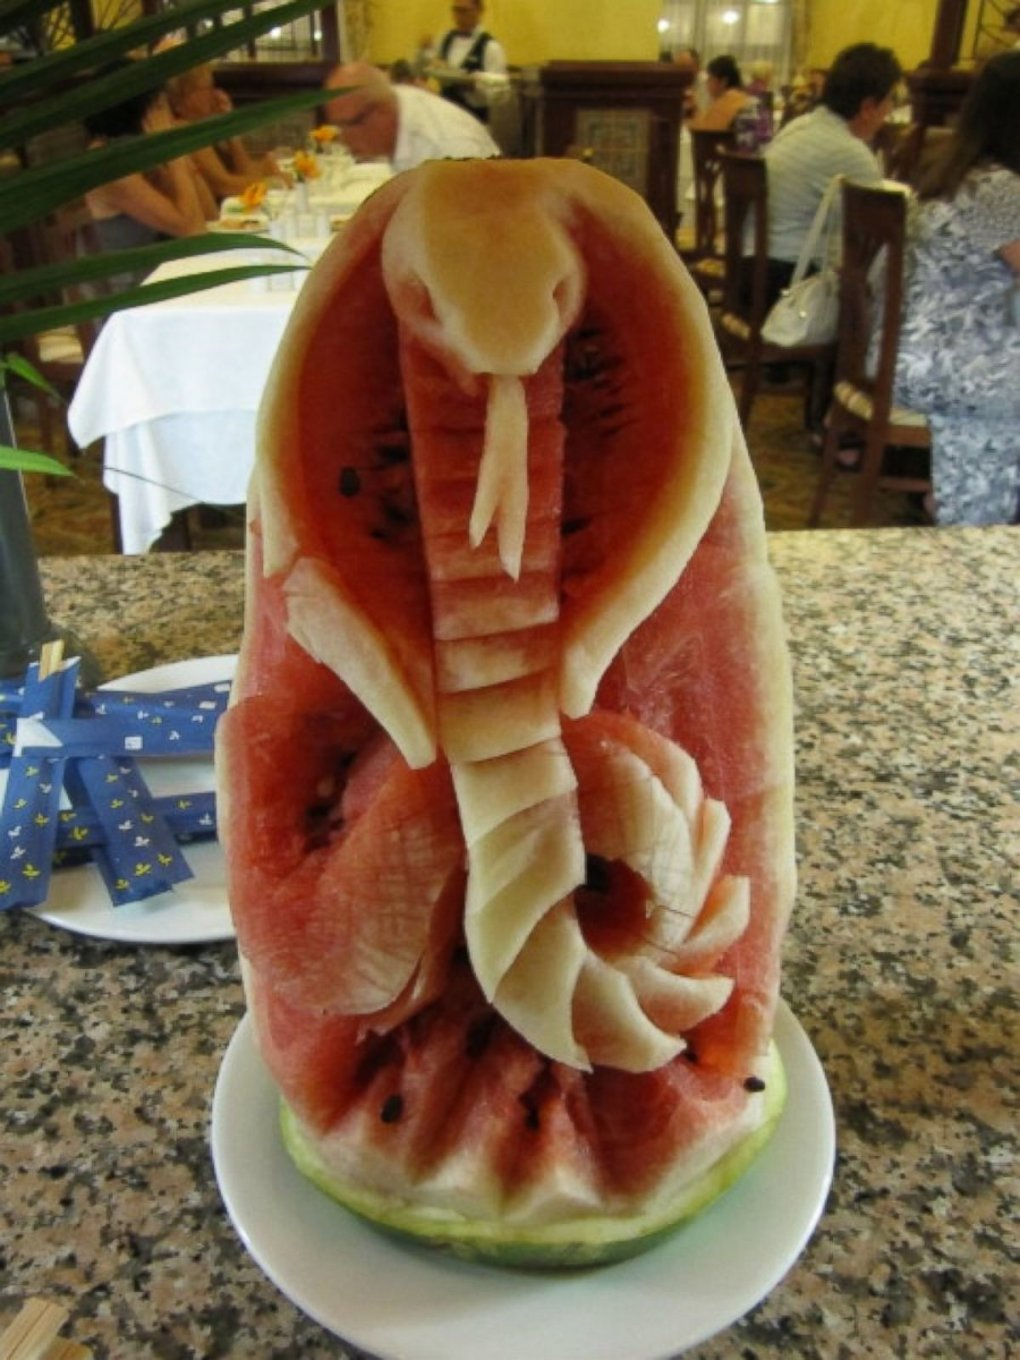 snake - summer snack: check out this amazing watermelon carvings